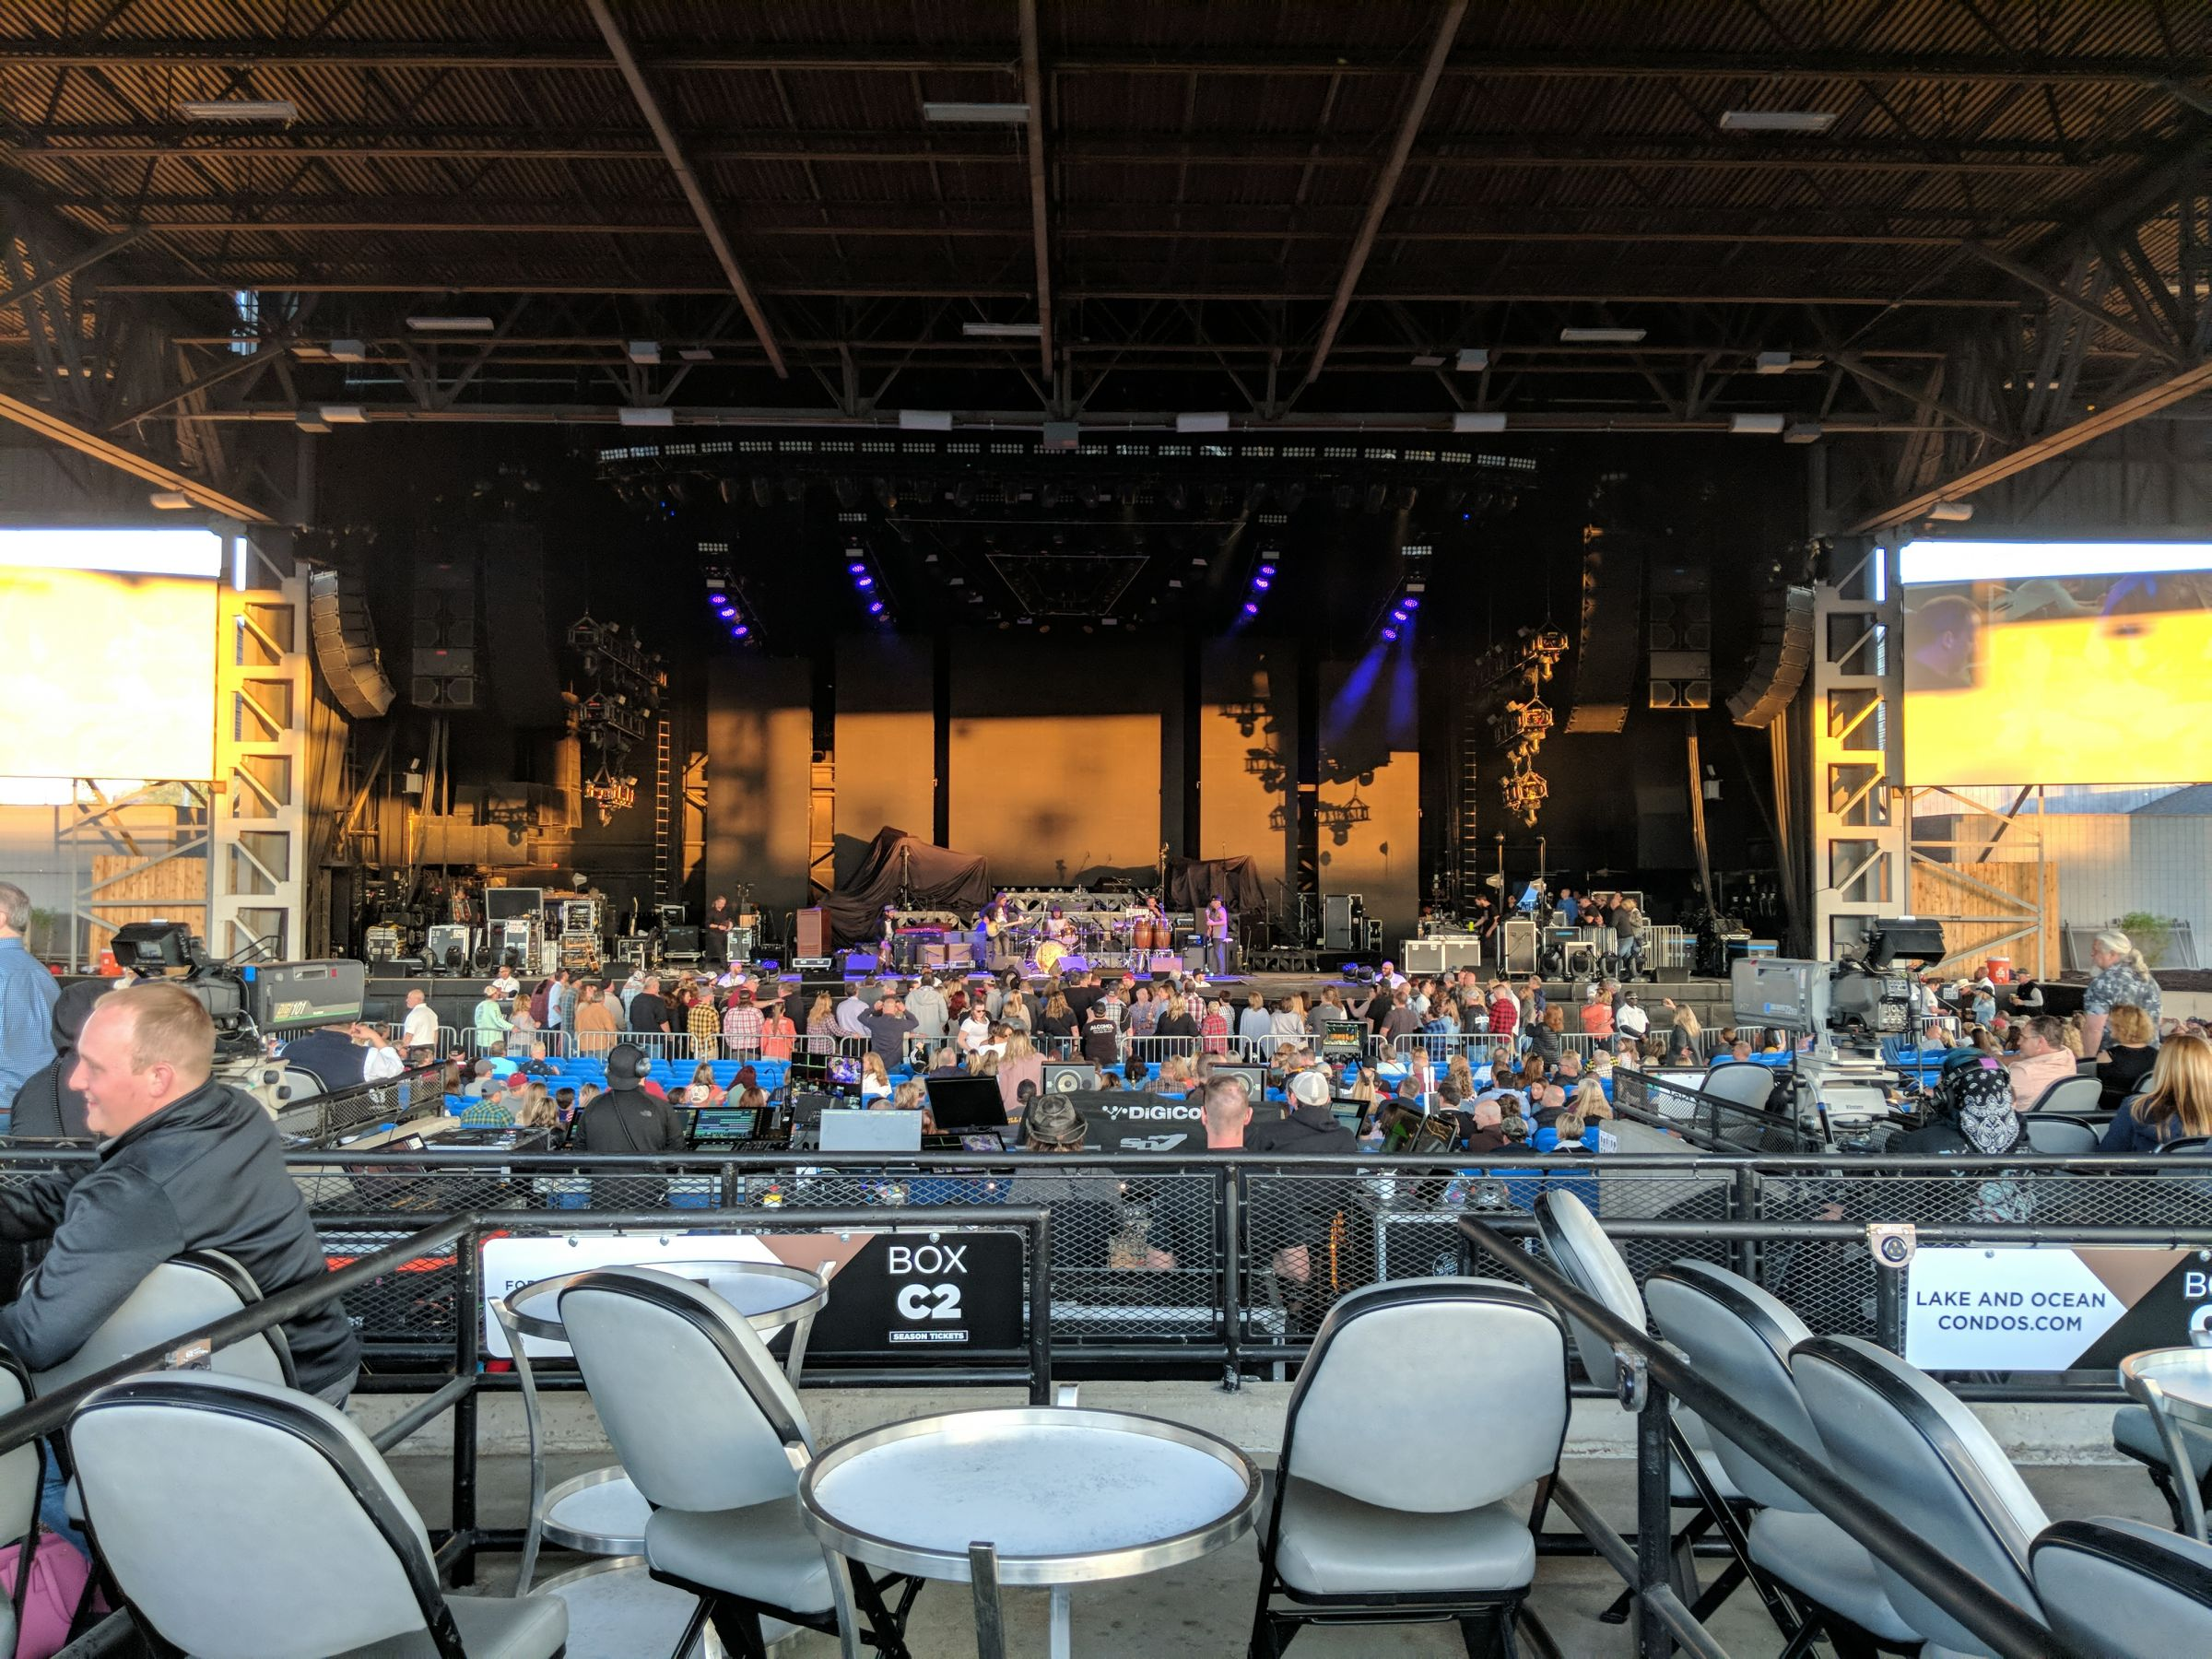 Hollywood Casino Amphitheatre Seating Guide Rateyourseatscom